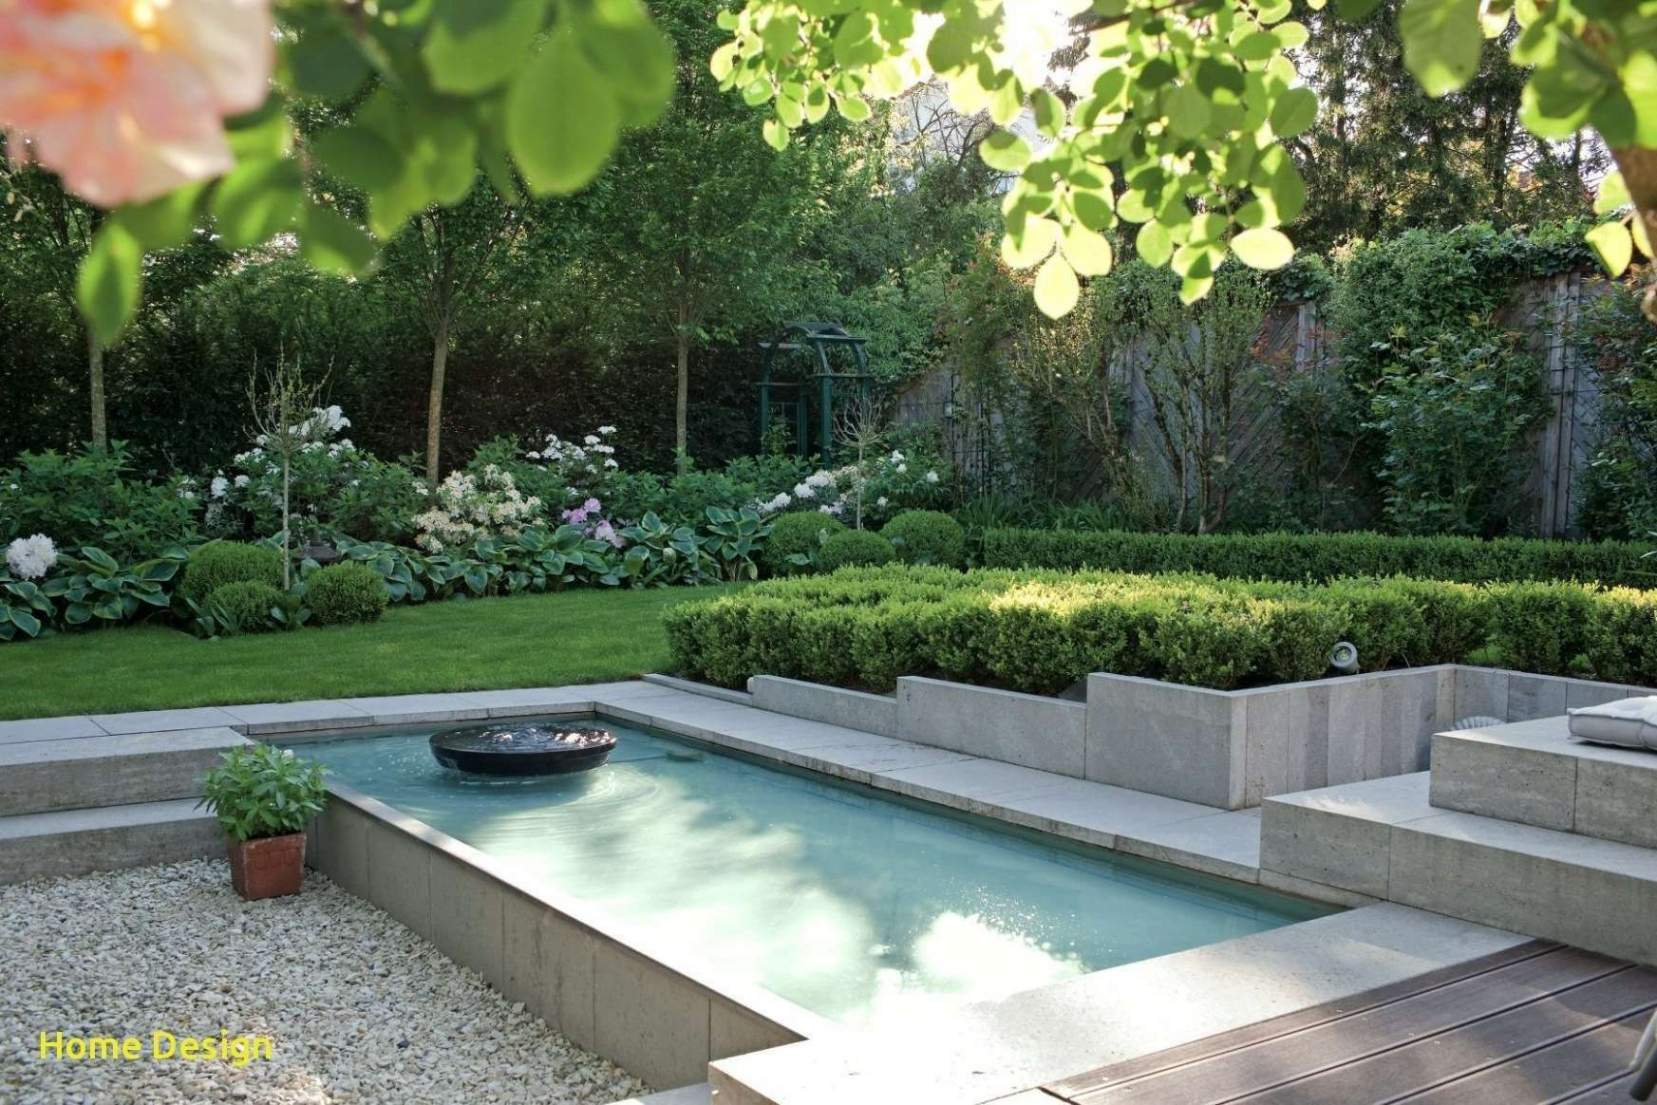 42 schon swimming pool bild pool bilder inspiration pool bilder inspiration 1